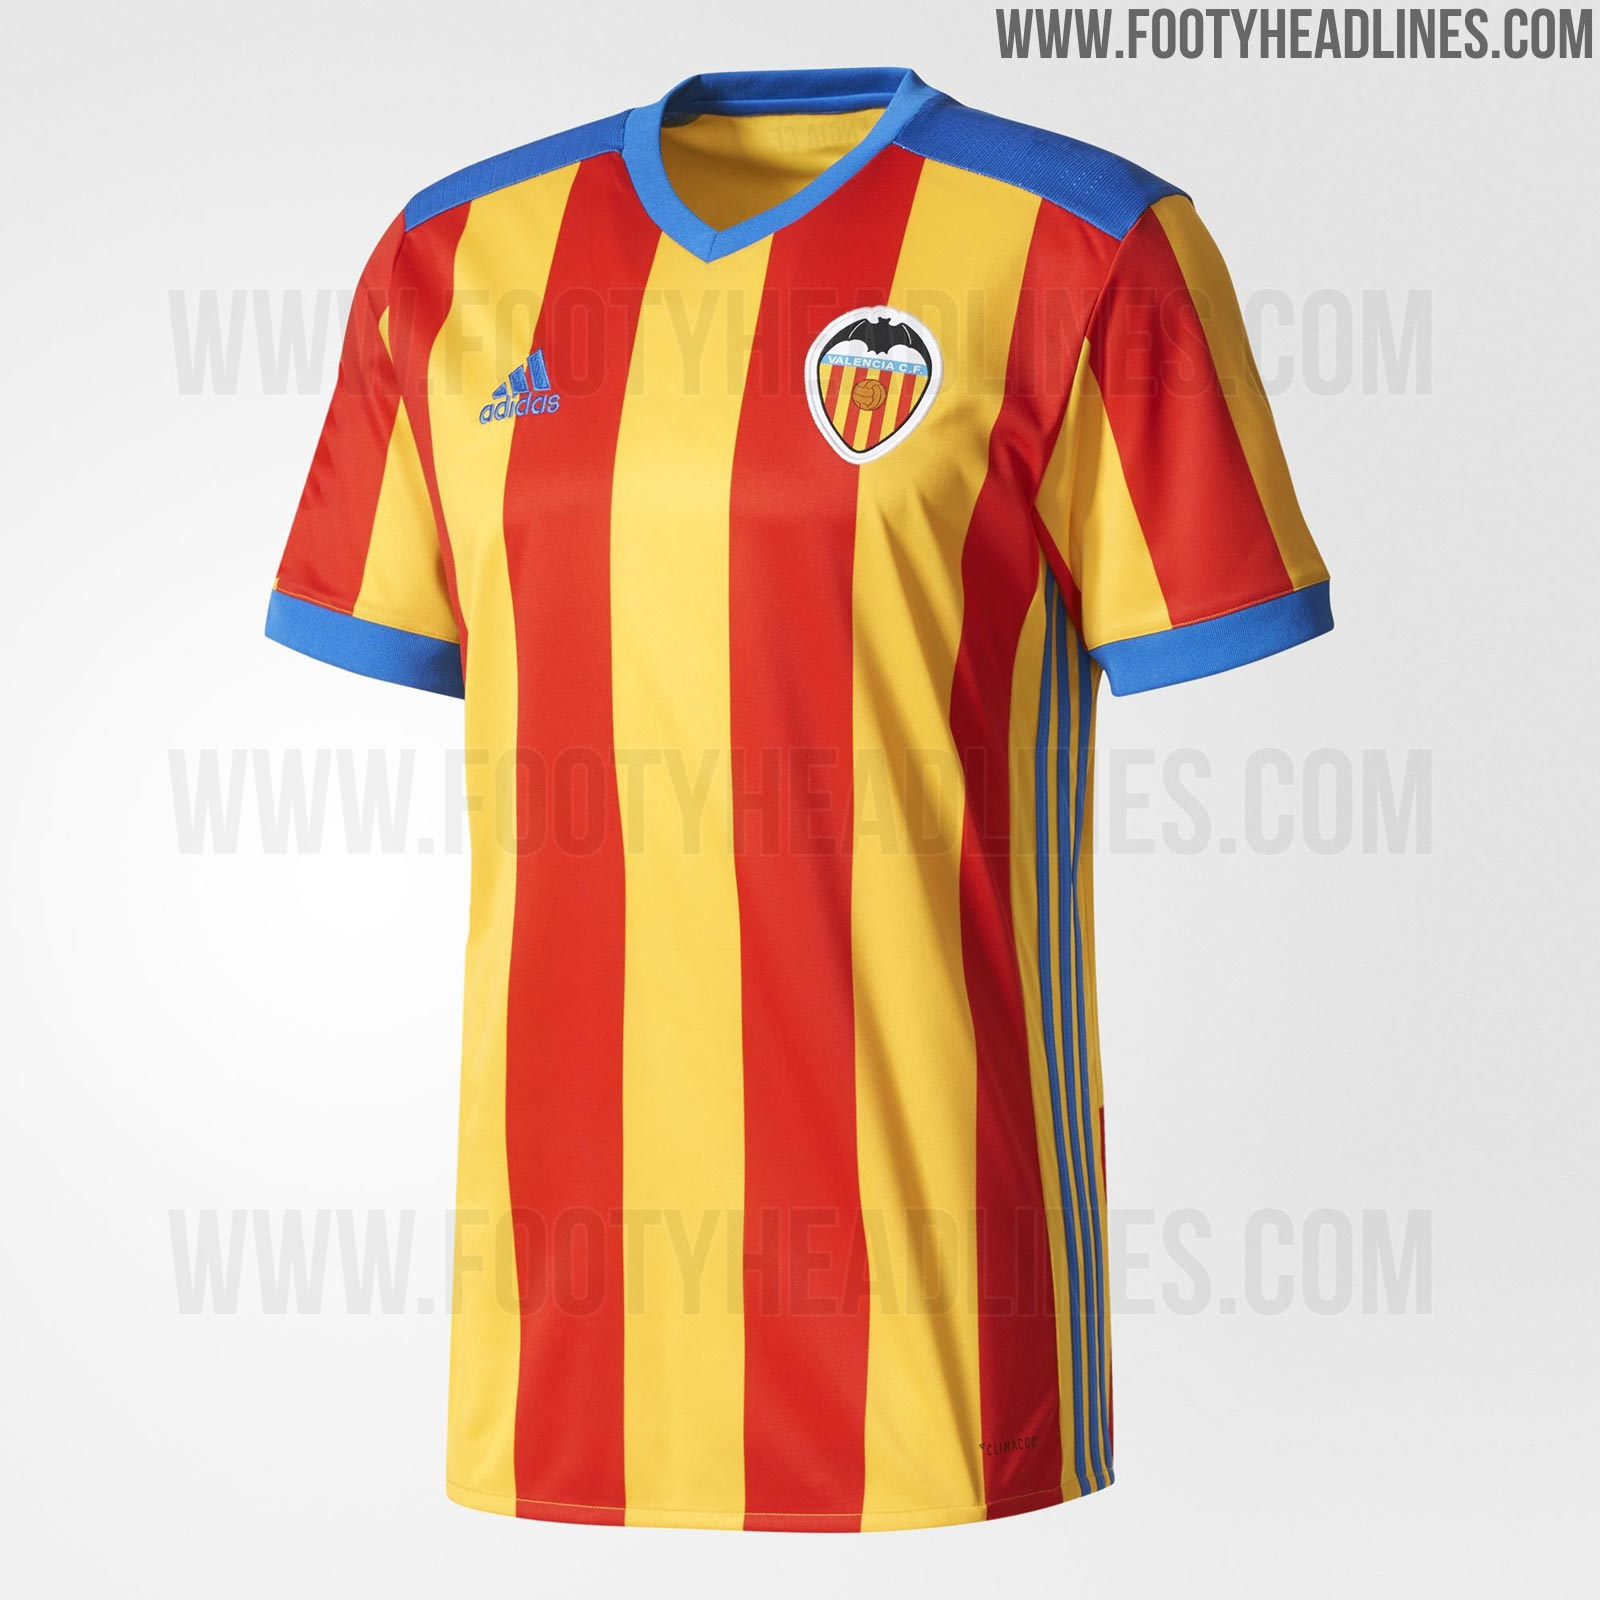 6190fd177 valencia fc away kit on sale   OFF69% Discounts